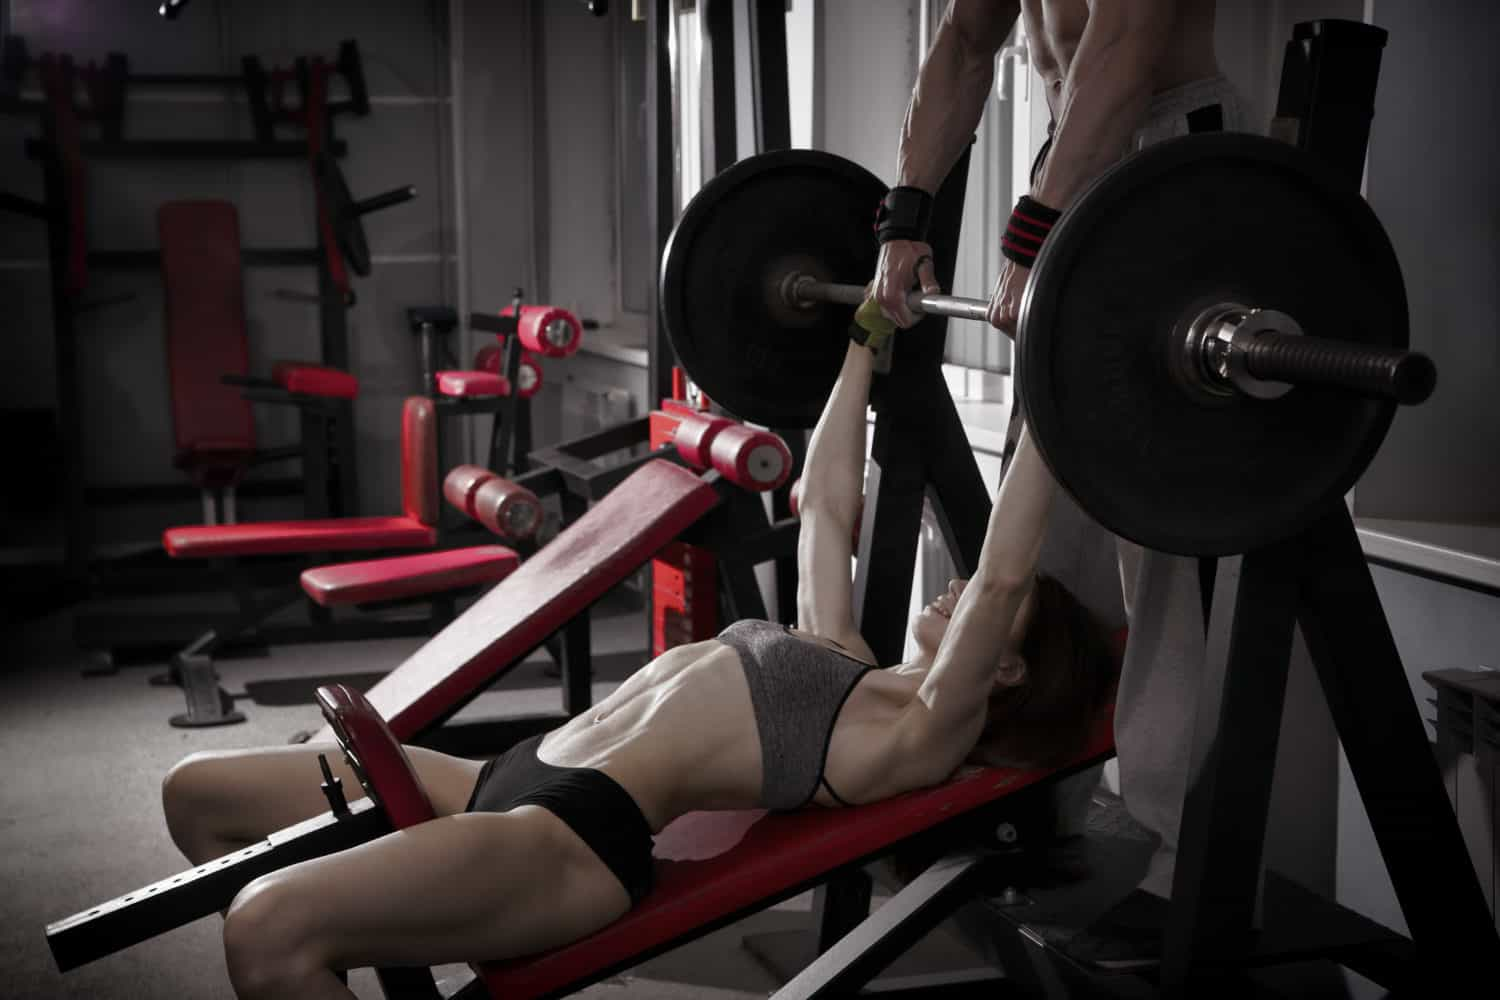 A young woman performing a bench press with bands